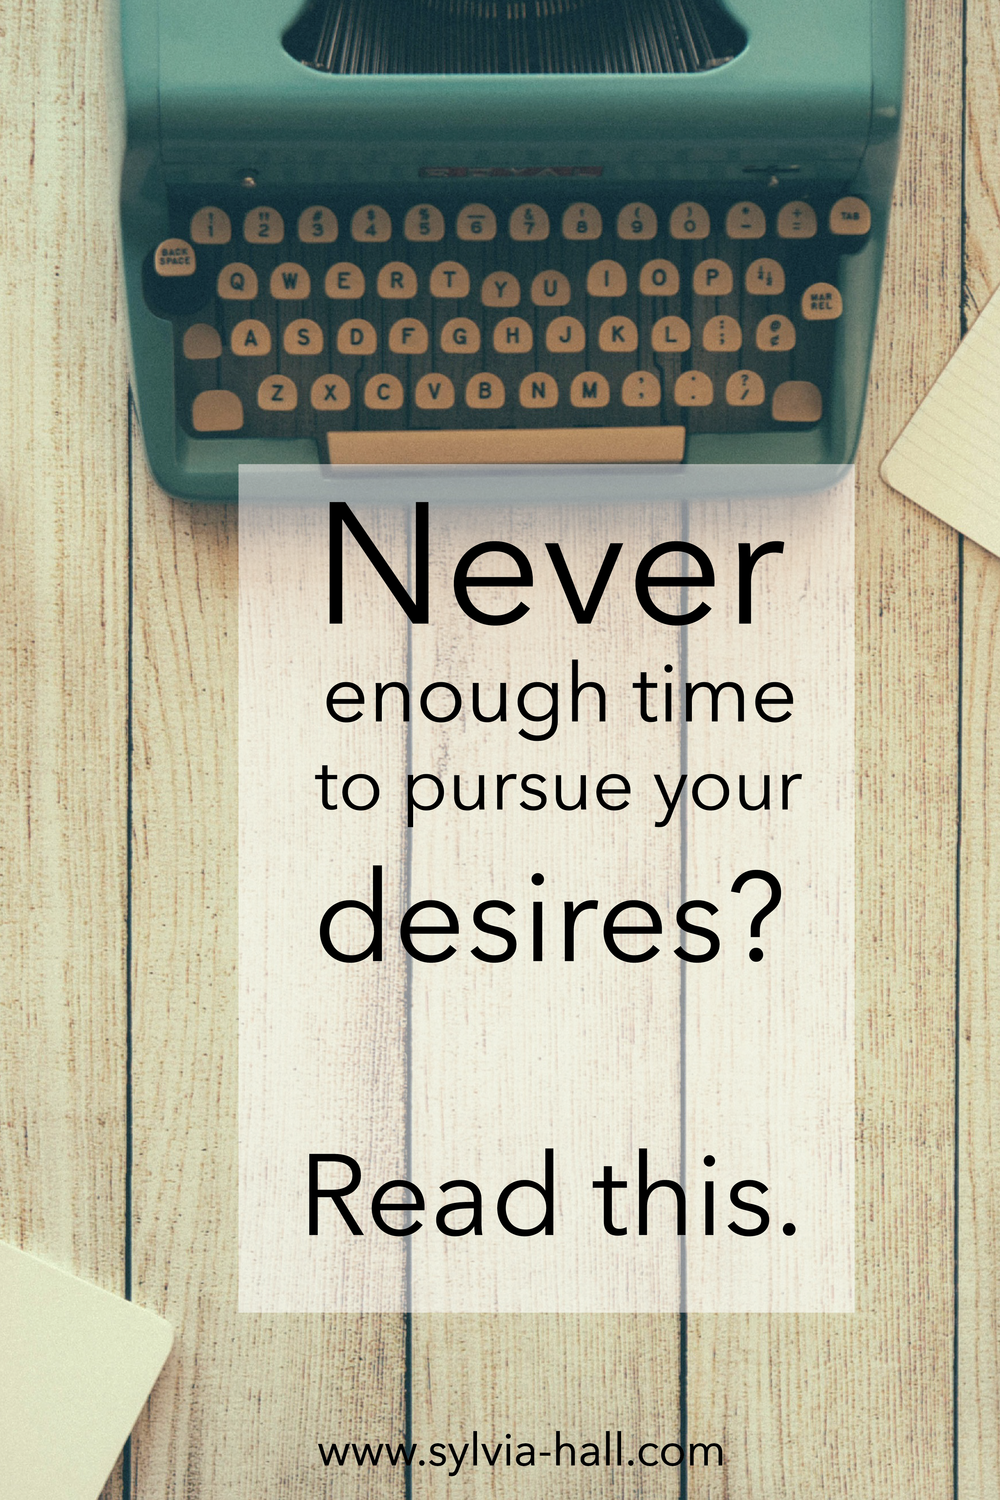 Never enough time in the day to pursue your desires? READ THIS!